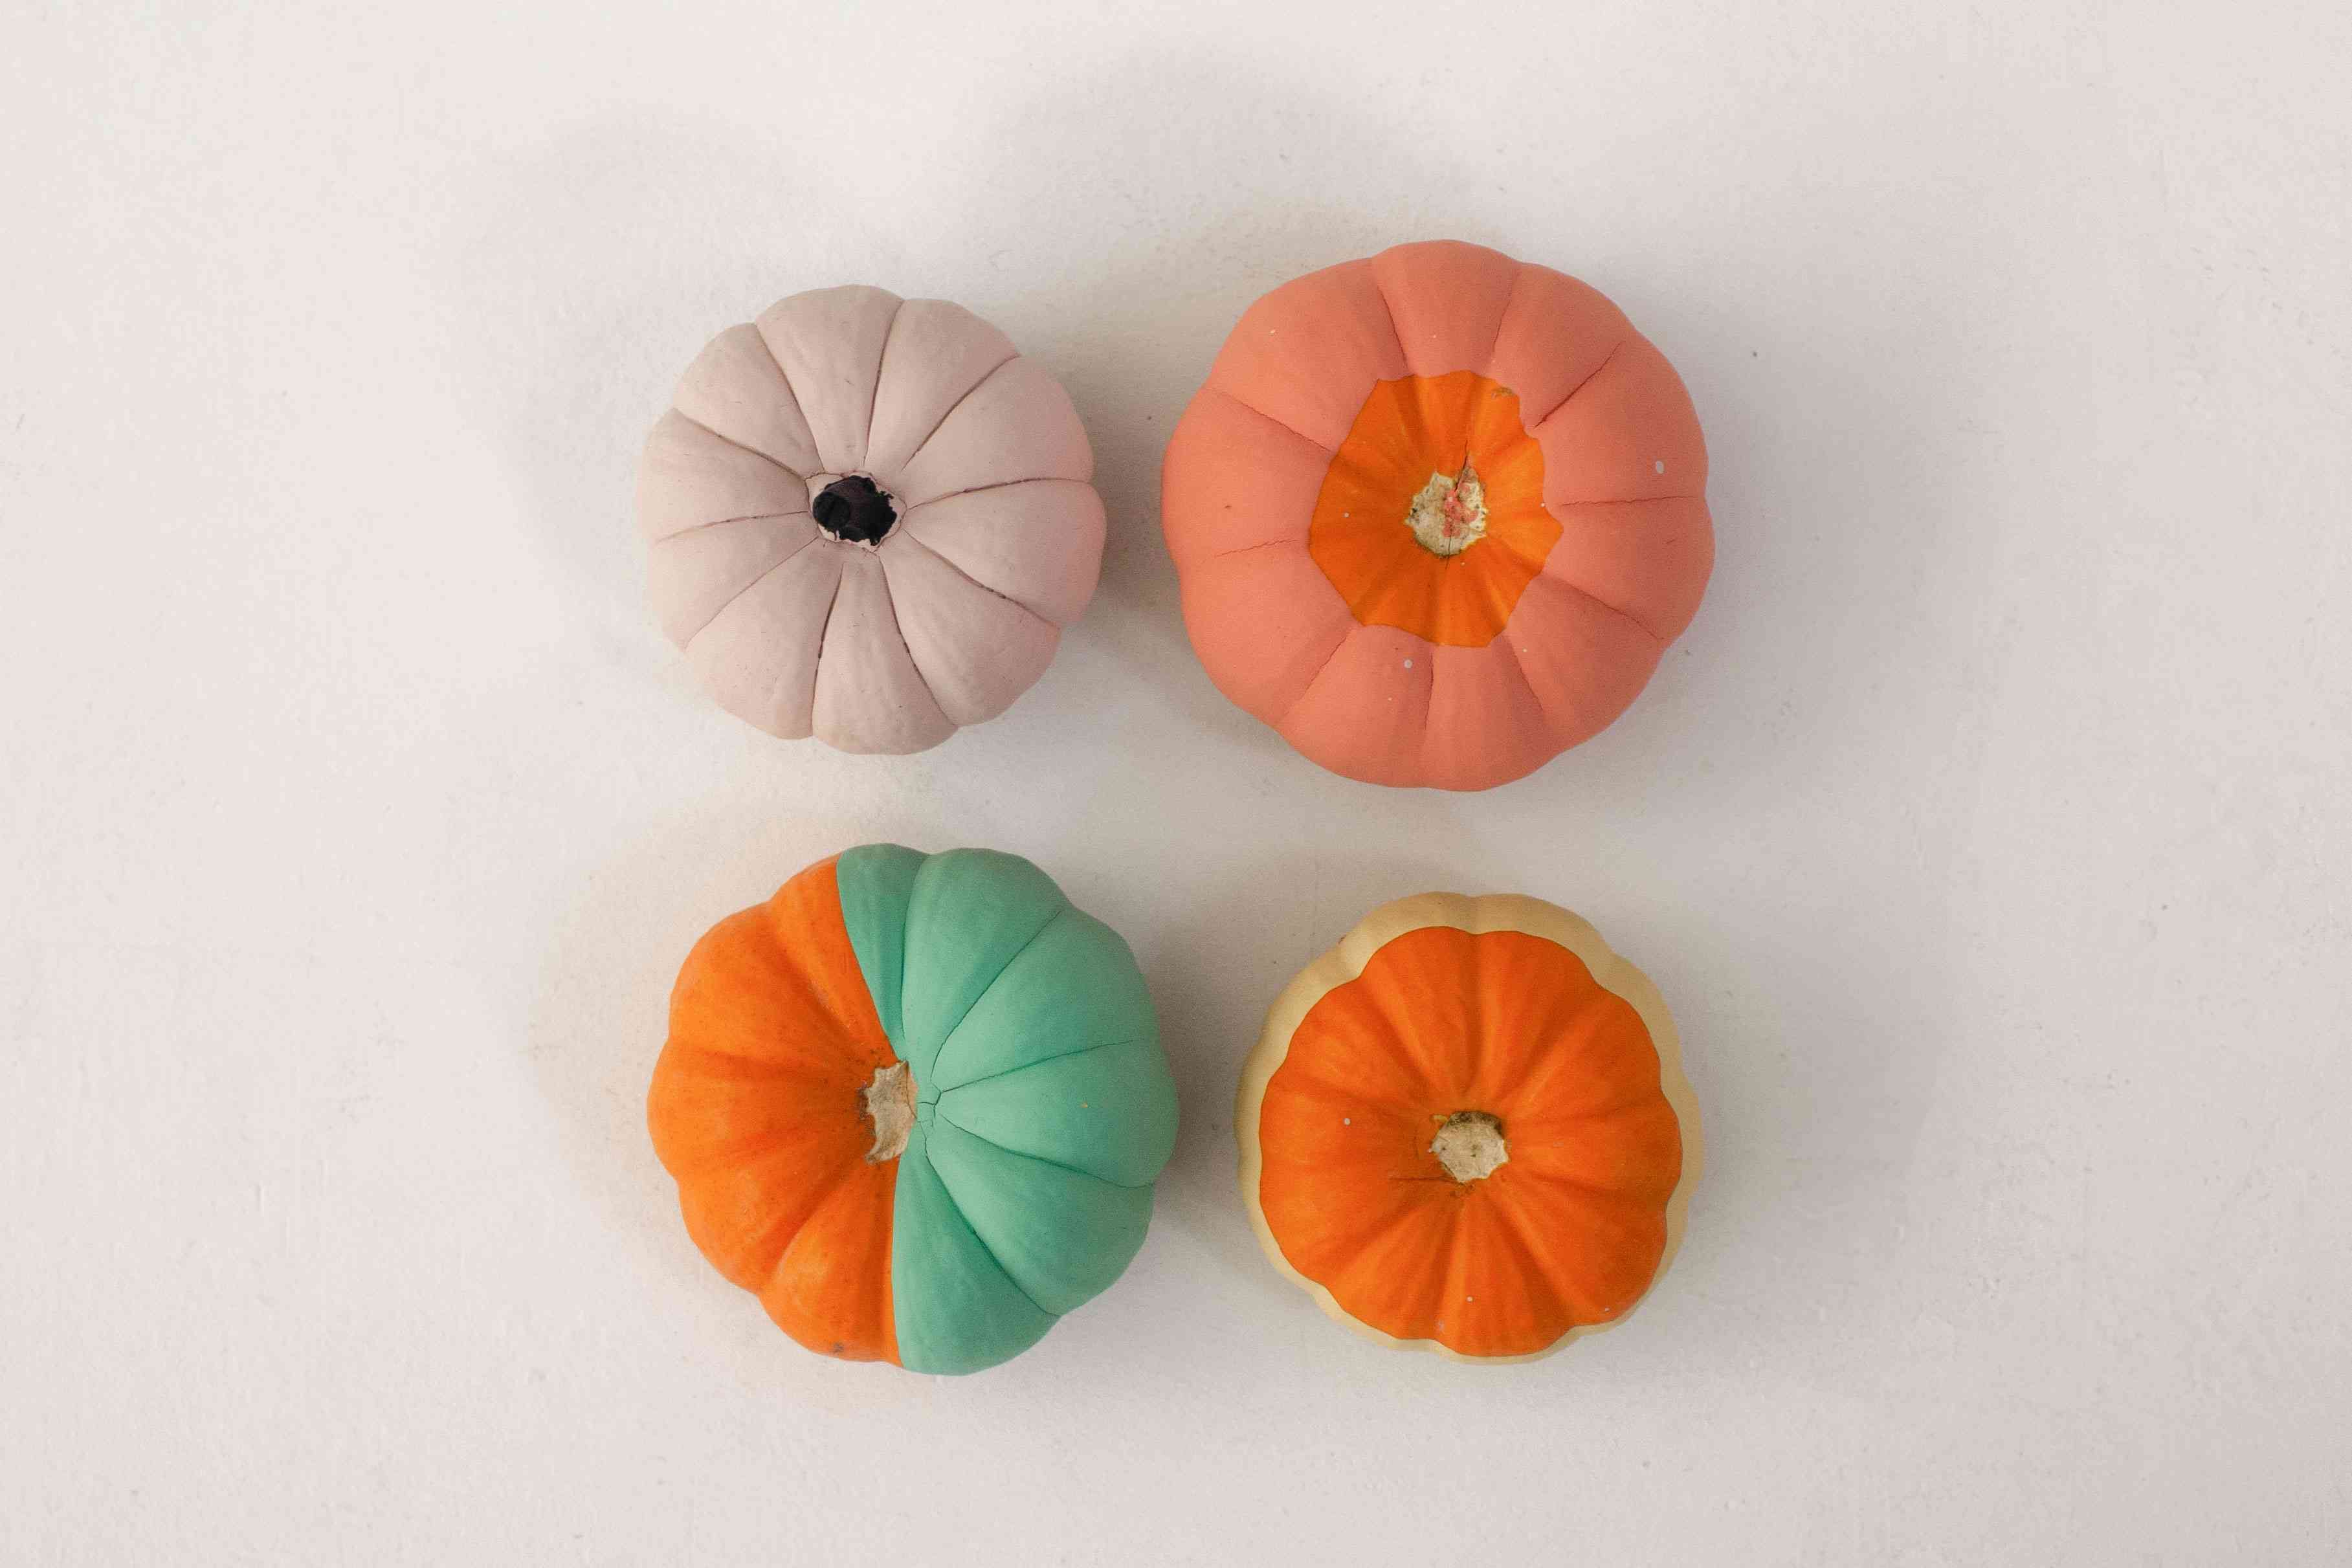 Painted pumpkins on white background